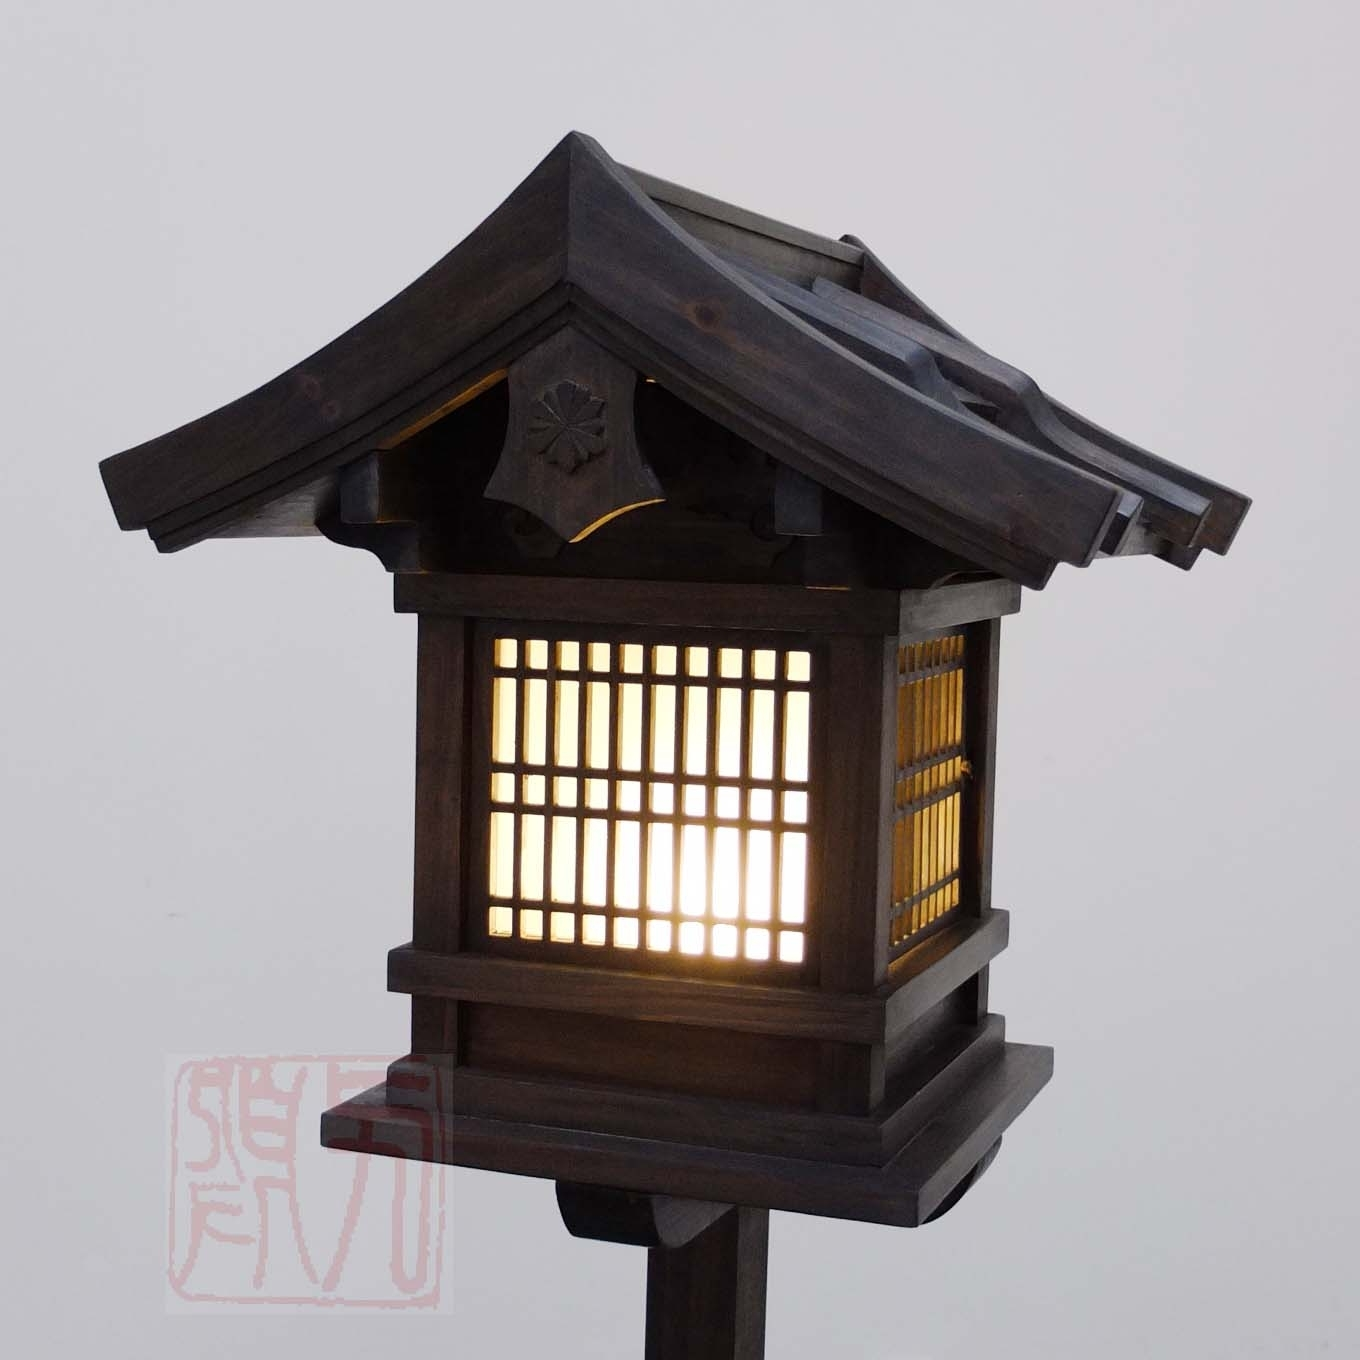 Outdoor Japanese Lanterns In Best And Newest Japanese Wooden Lantern, Outdoor (Wl2) – Eastern Classics (View 10 of 20)